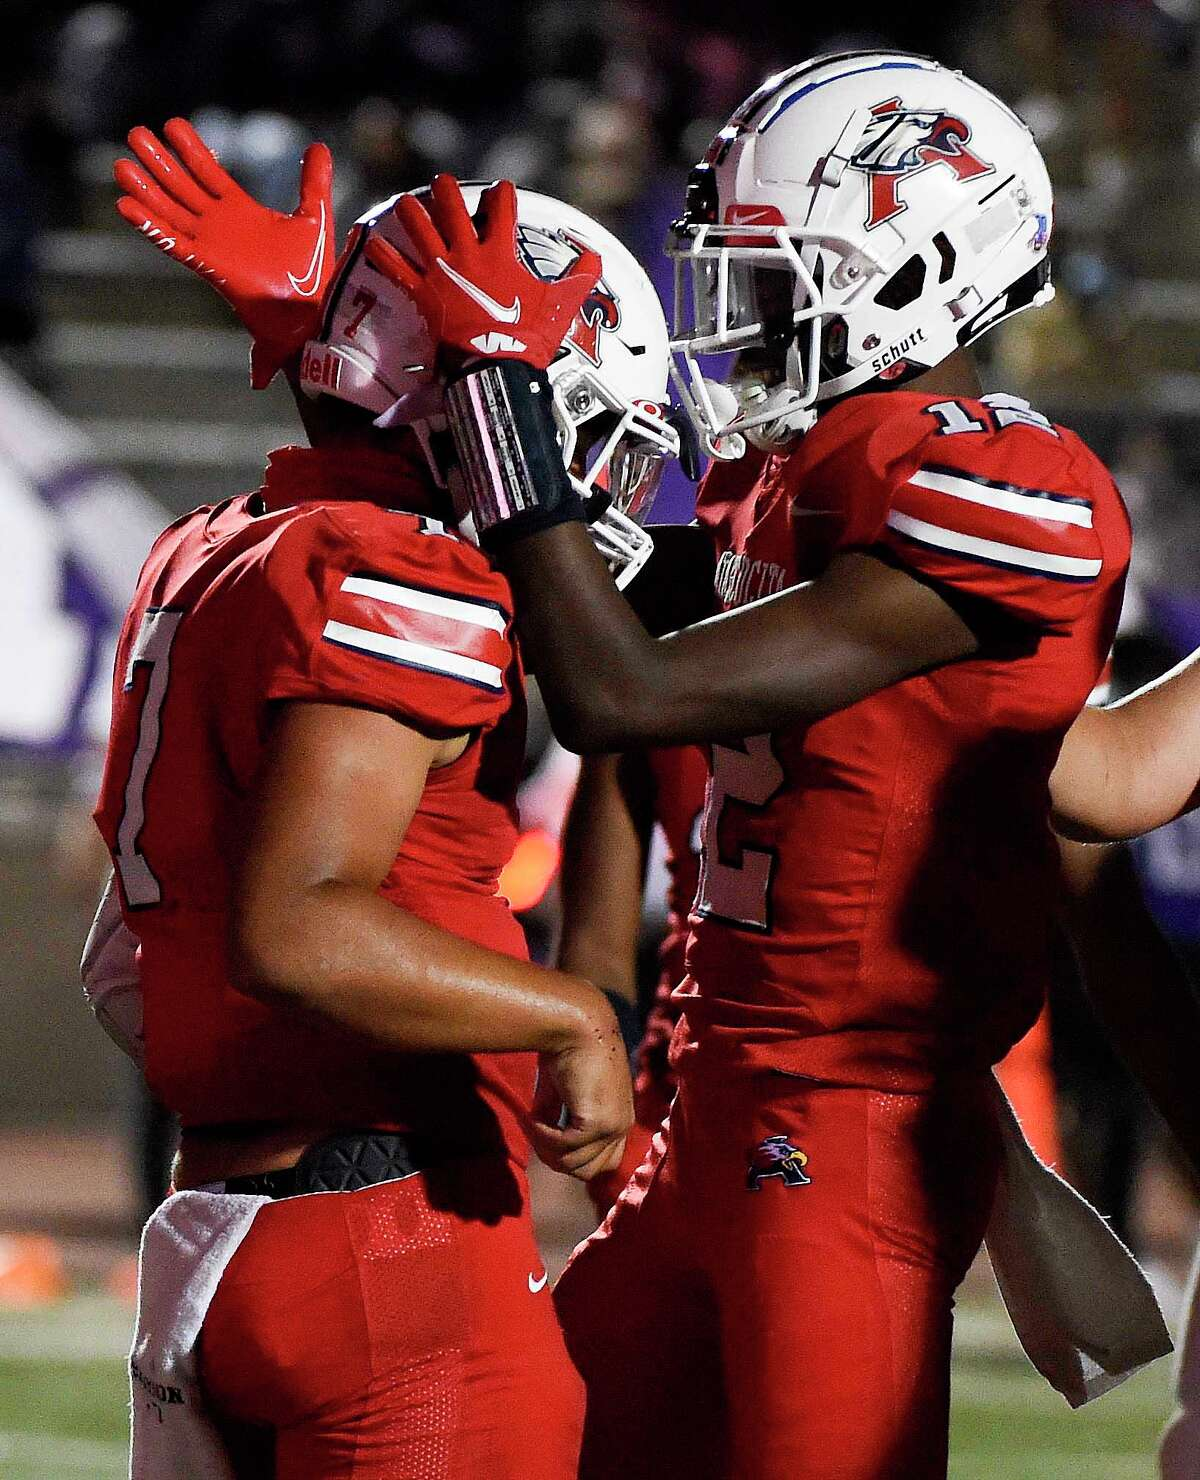 Atascocita quarterback Gavin Session, left, celebrates his touchdown with Keith Wheeler during the second half of a high school football game against Humble, Friday, Oct. 23, 2020, in Humble.